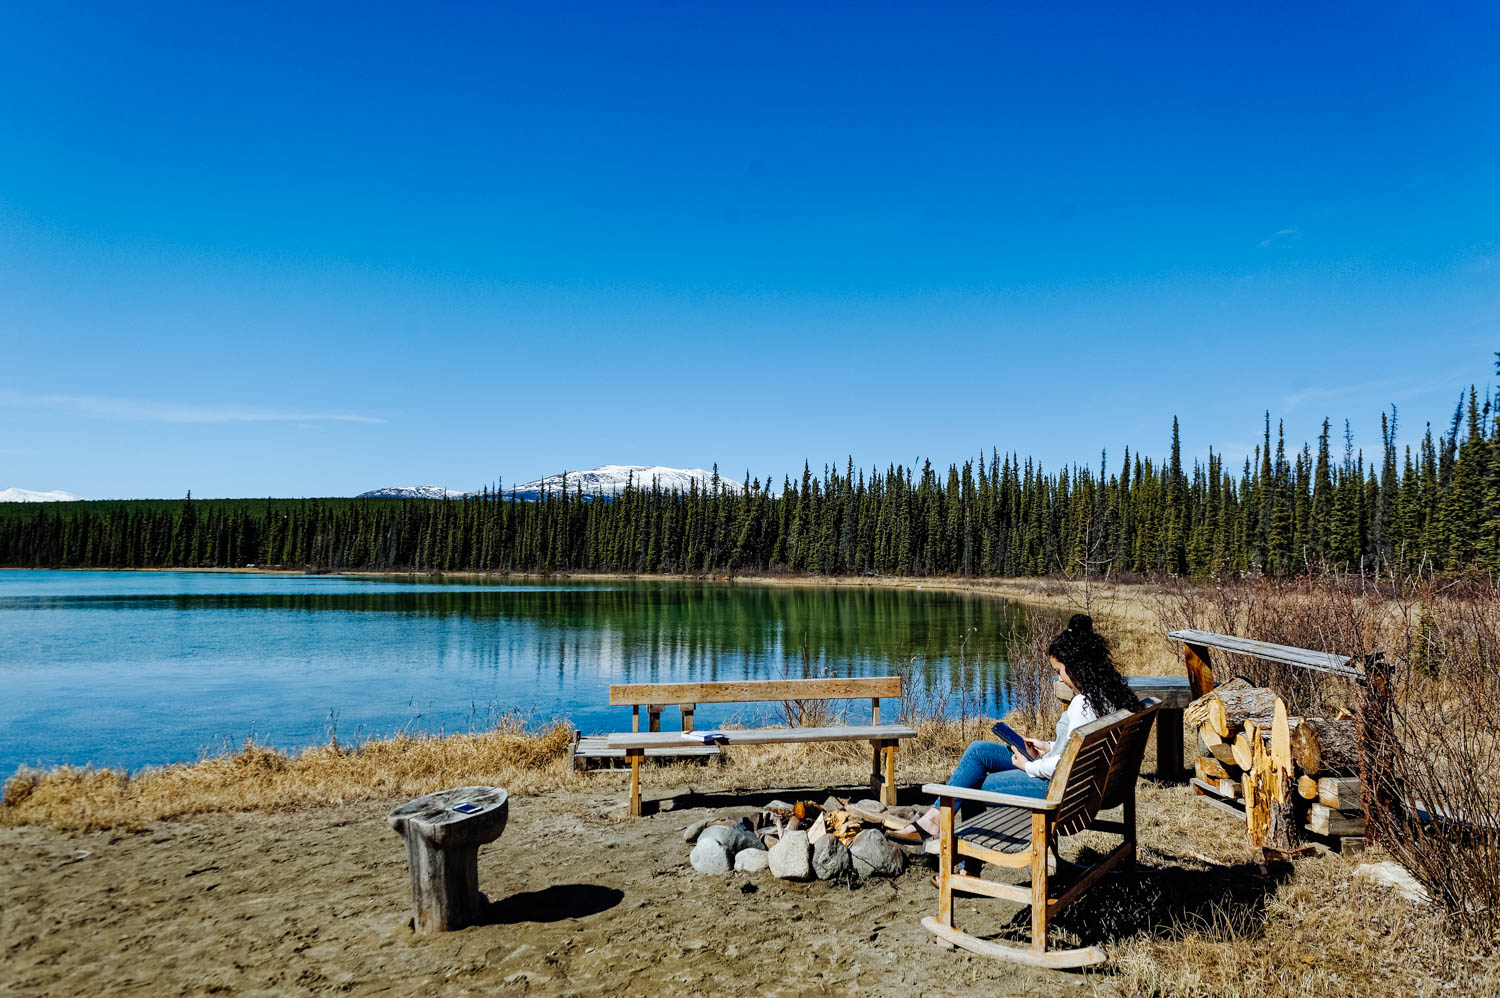 Our friends' beautiful backyard that we are so very glad to be able to enjoy while we are in Whitehorse.